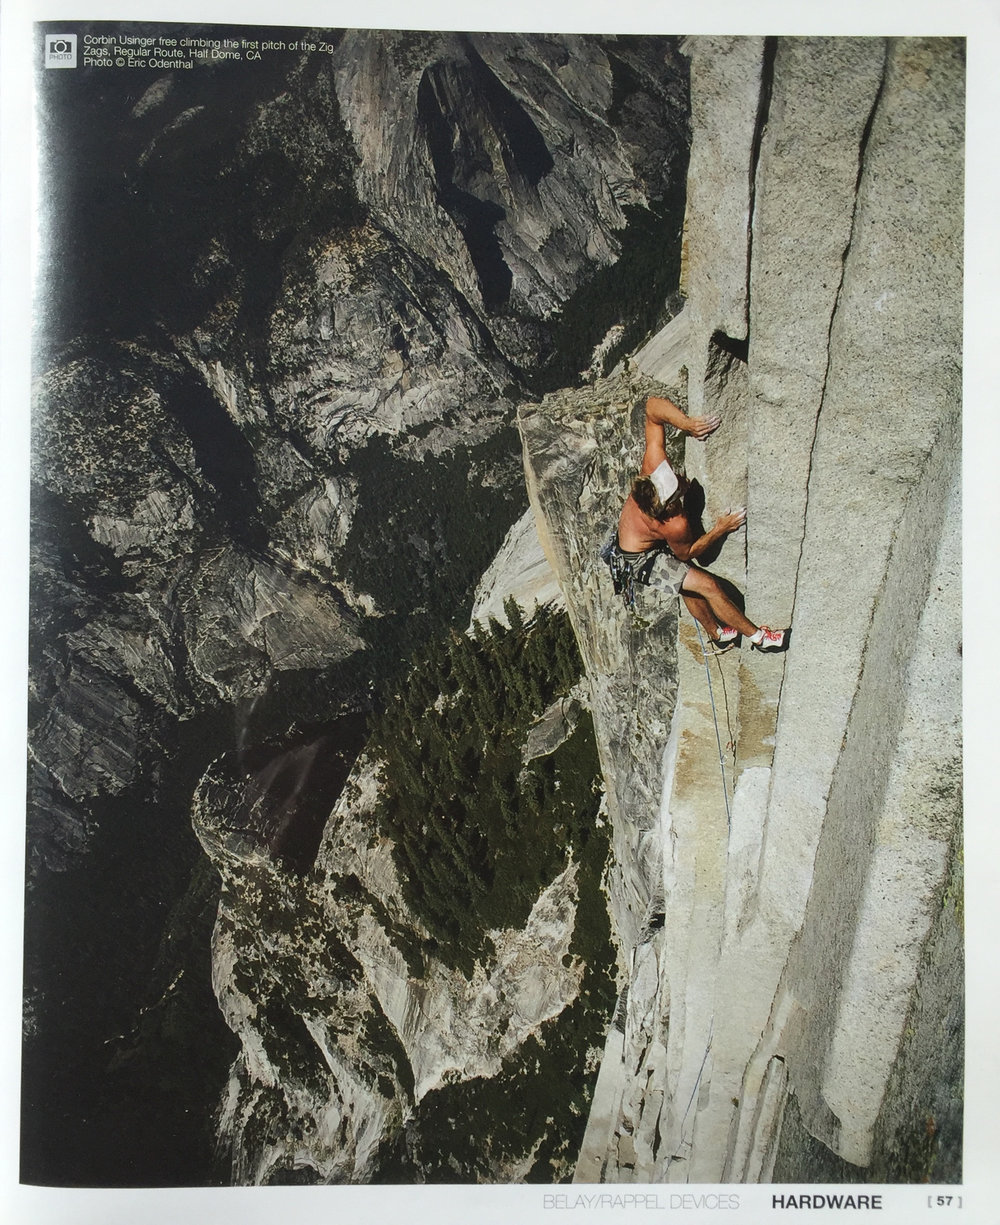 LIBERTY MOUNTAIN CATALOG  CLIMBER | CORBIN USINGER  PHOTO | ERIC ODENTHAL  REGULAR ROUTE | HALF DOME | YOSEMITE